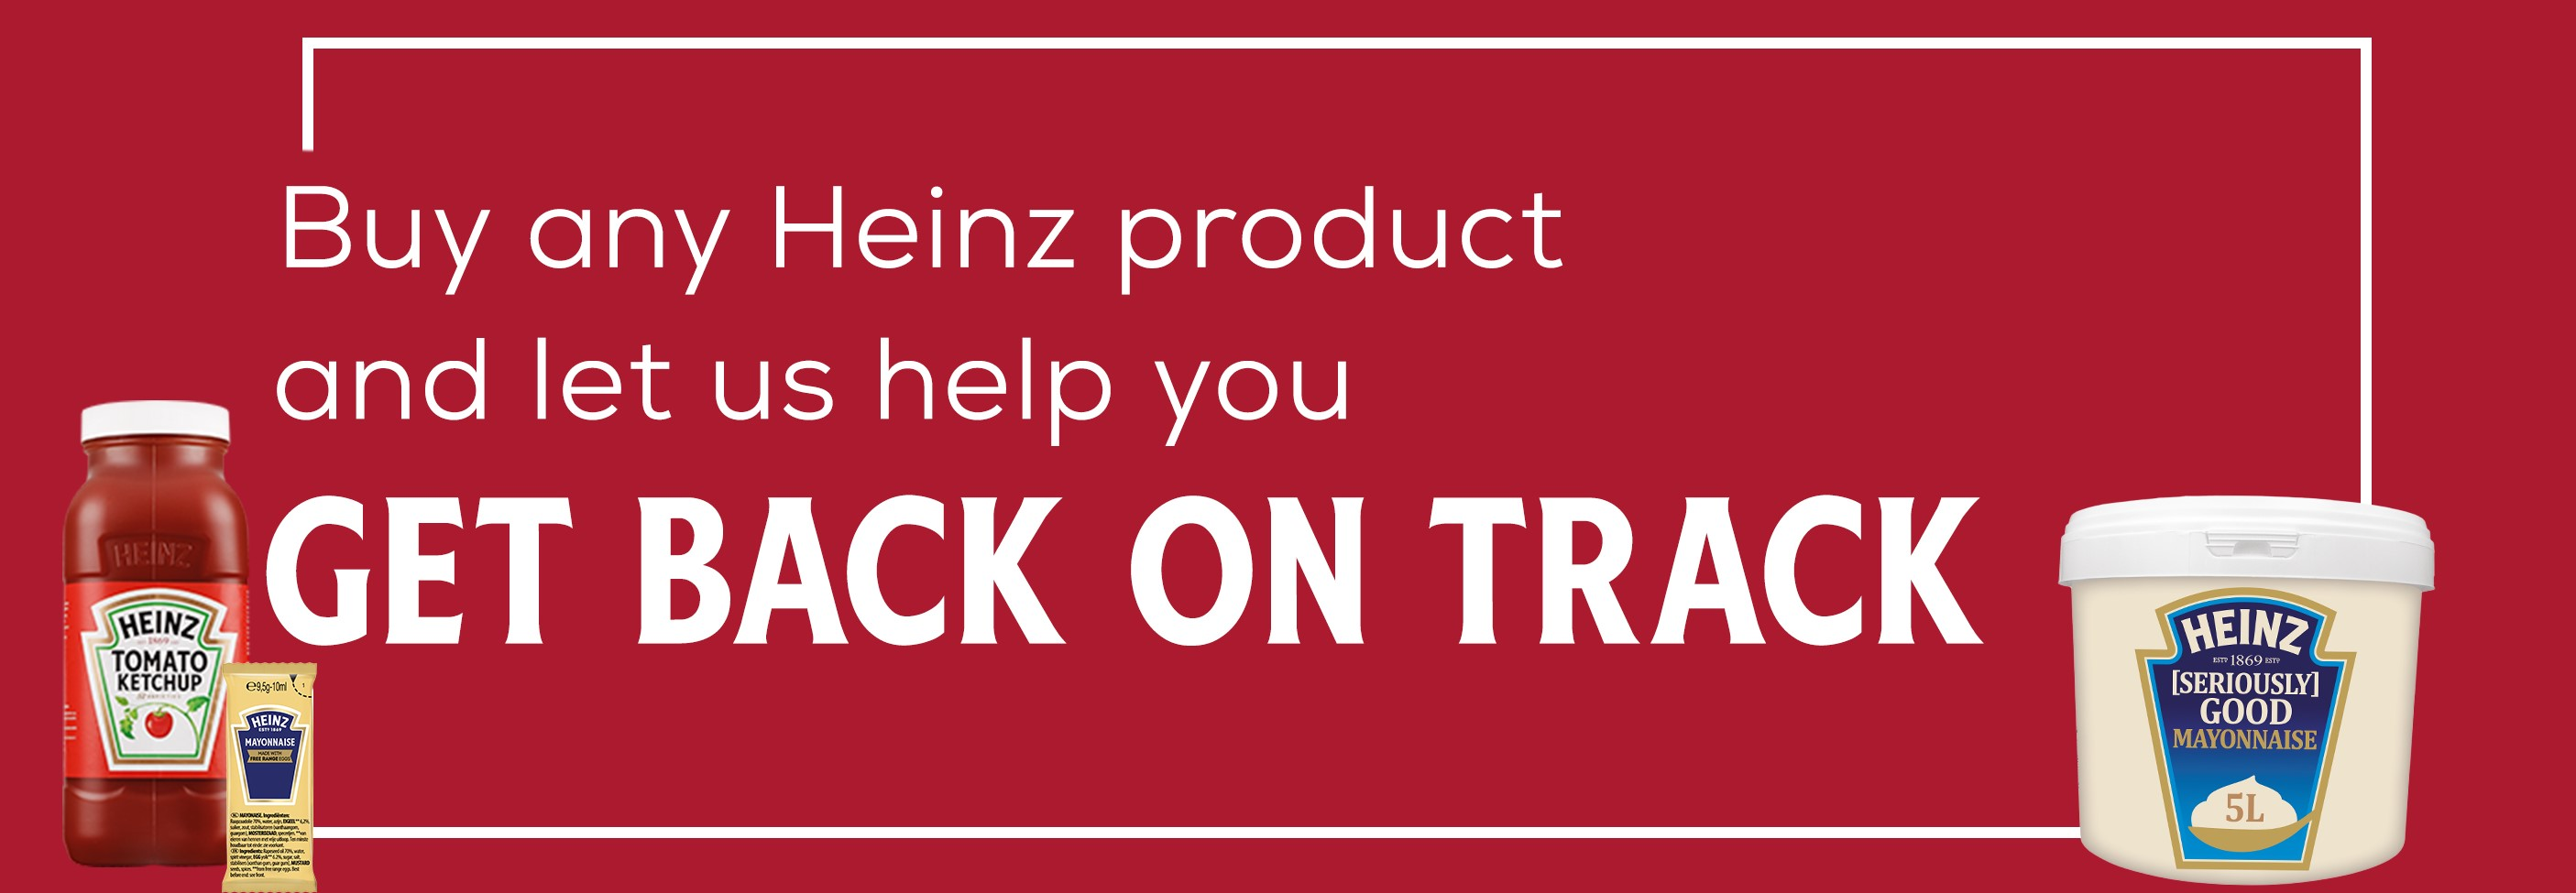 Get back on track banner image